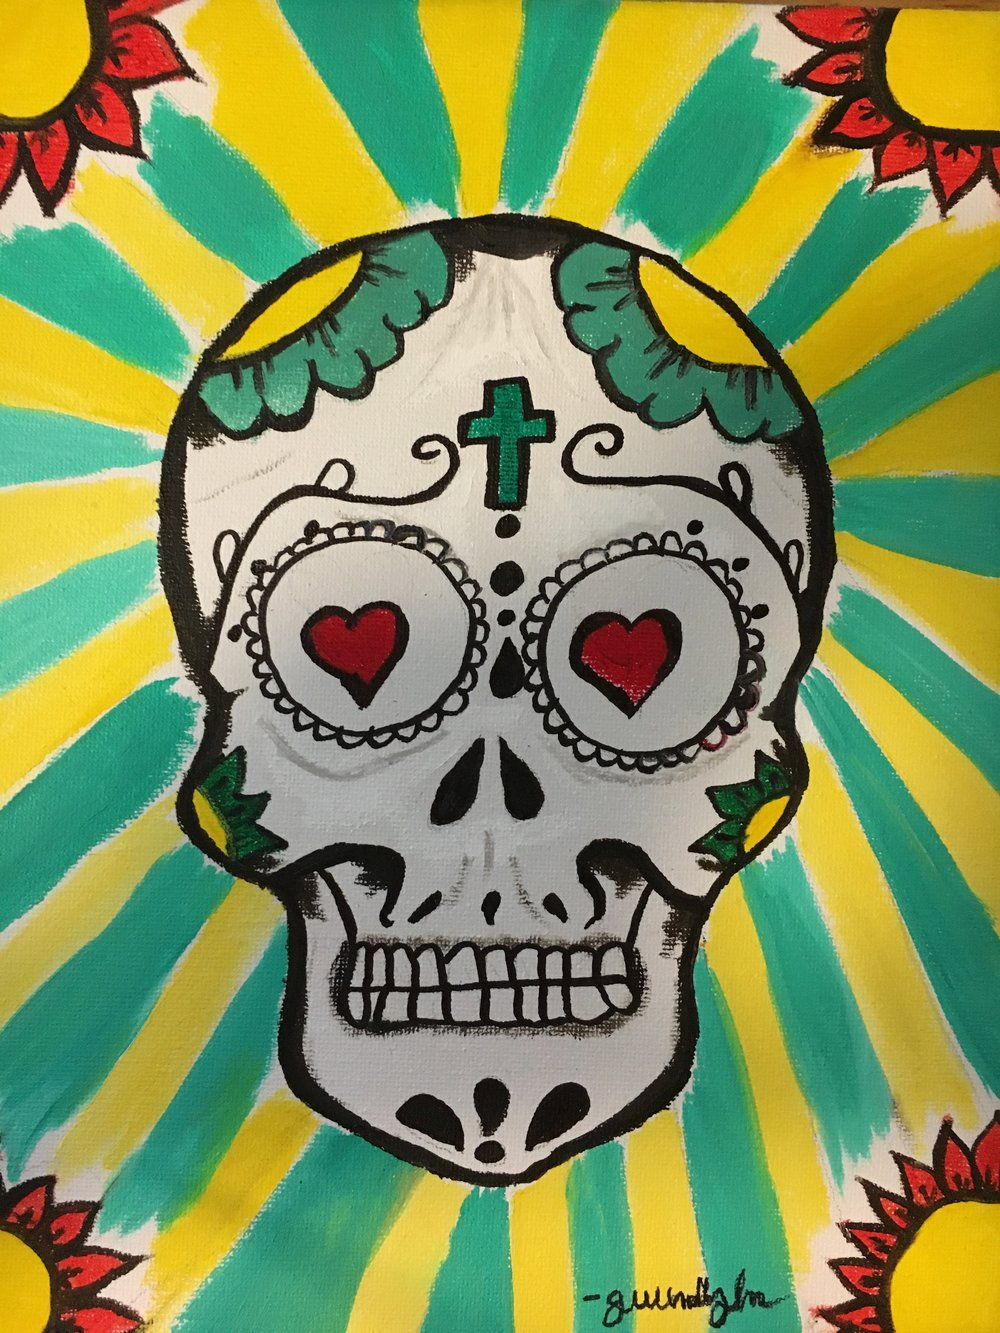 Sugar Skulls? It's cool, Hear Gustavo talk about how they came to the United States